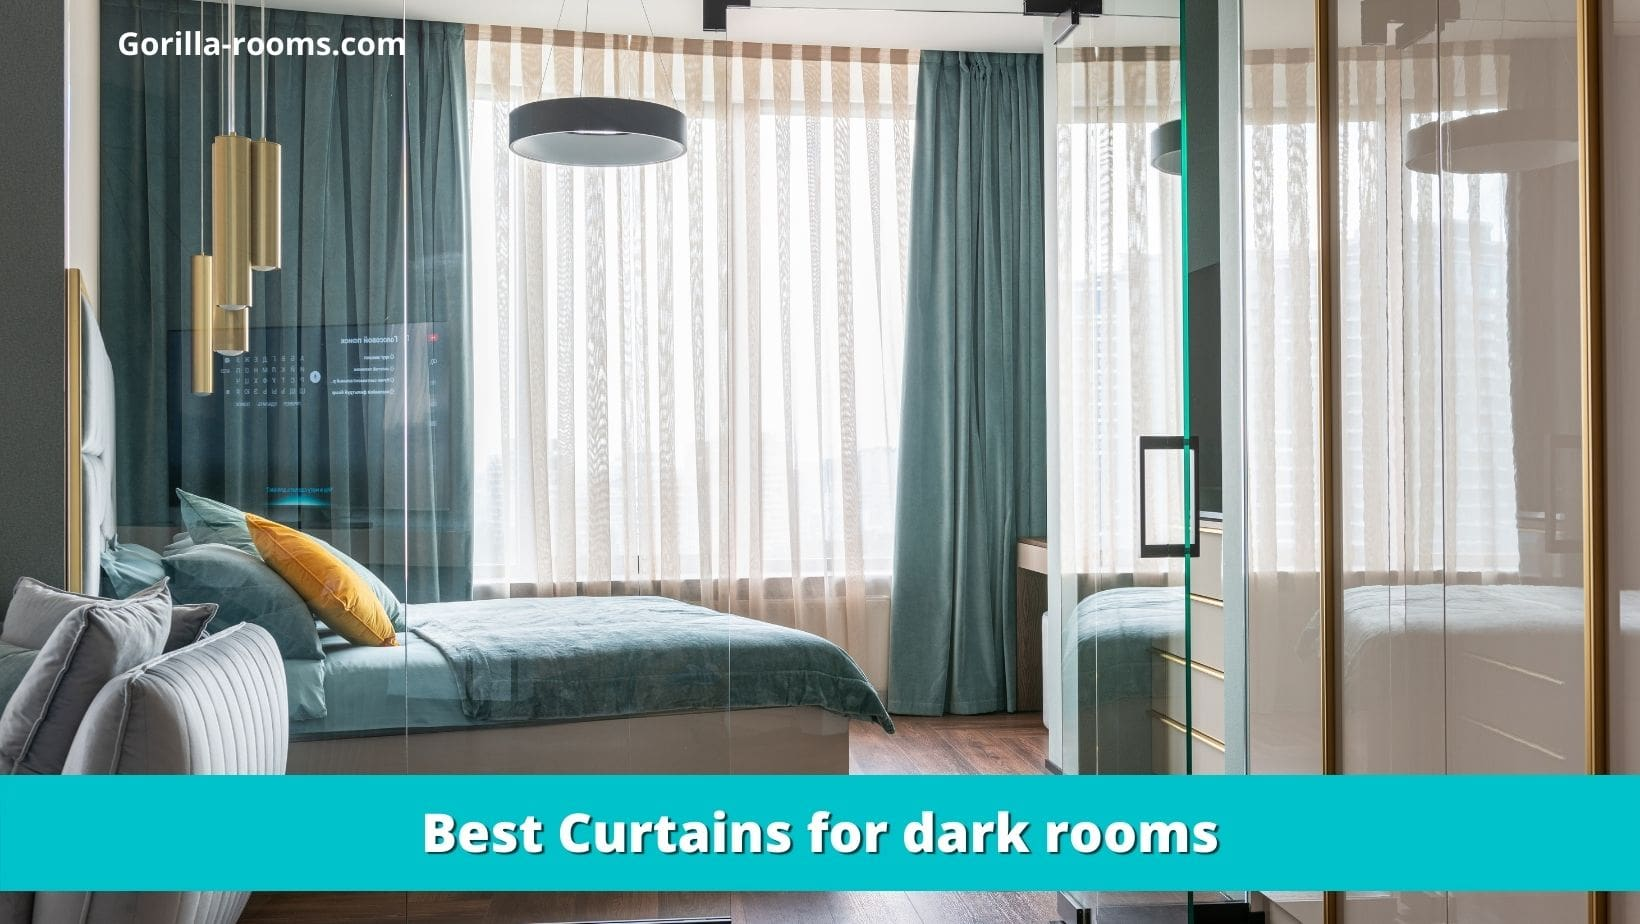 Best Curtains for dark rooms